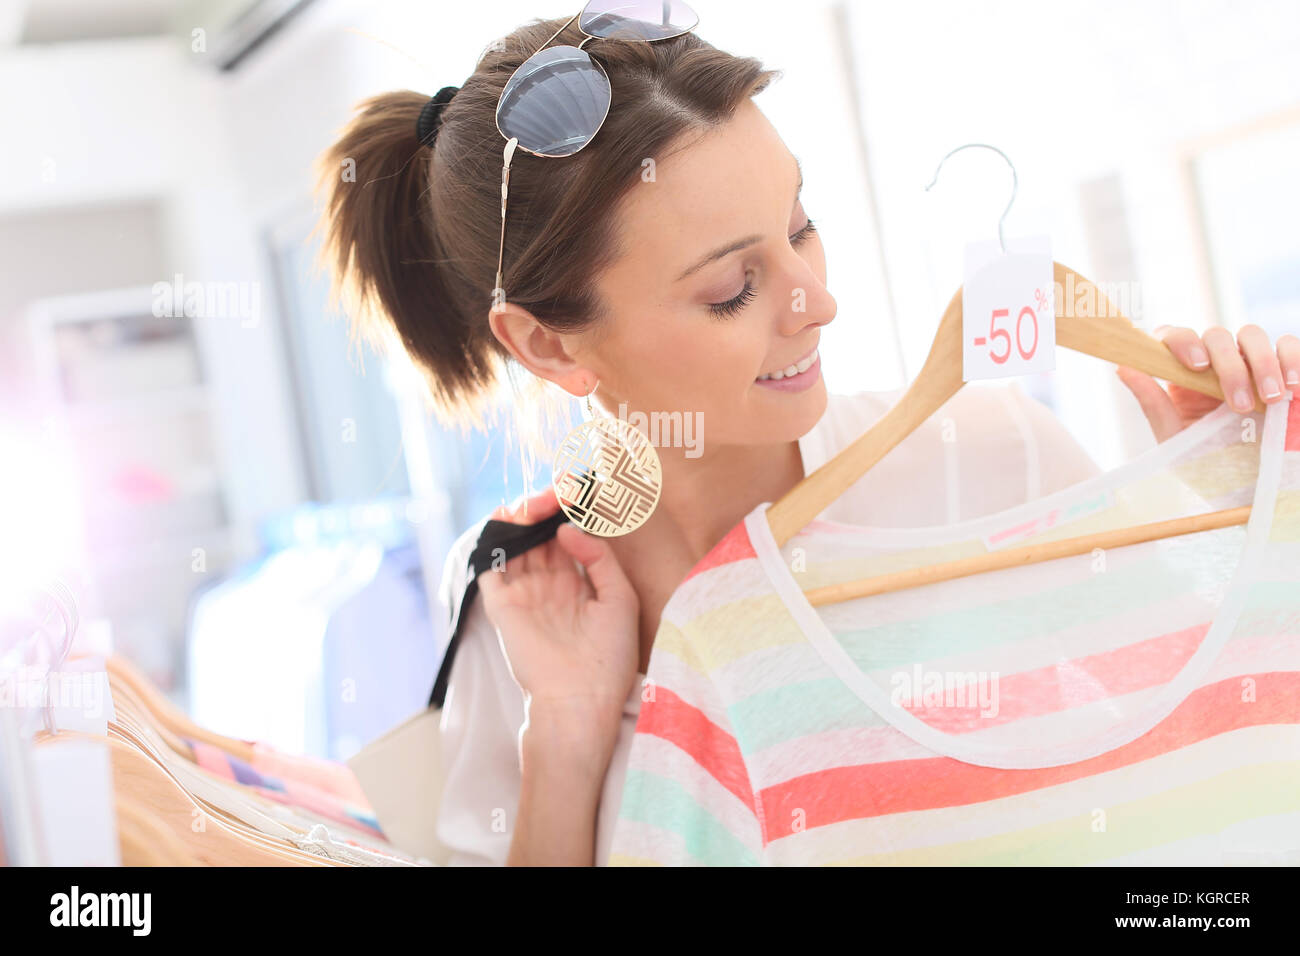 Beautiful woman in clothing storesduring summer sales - Stock Image